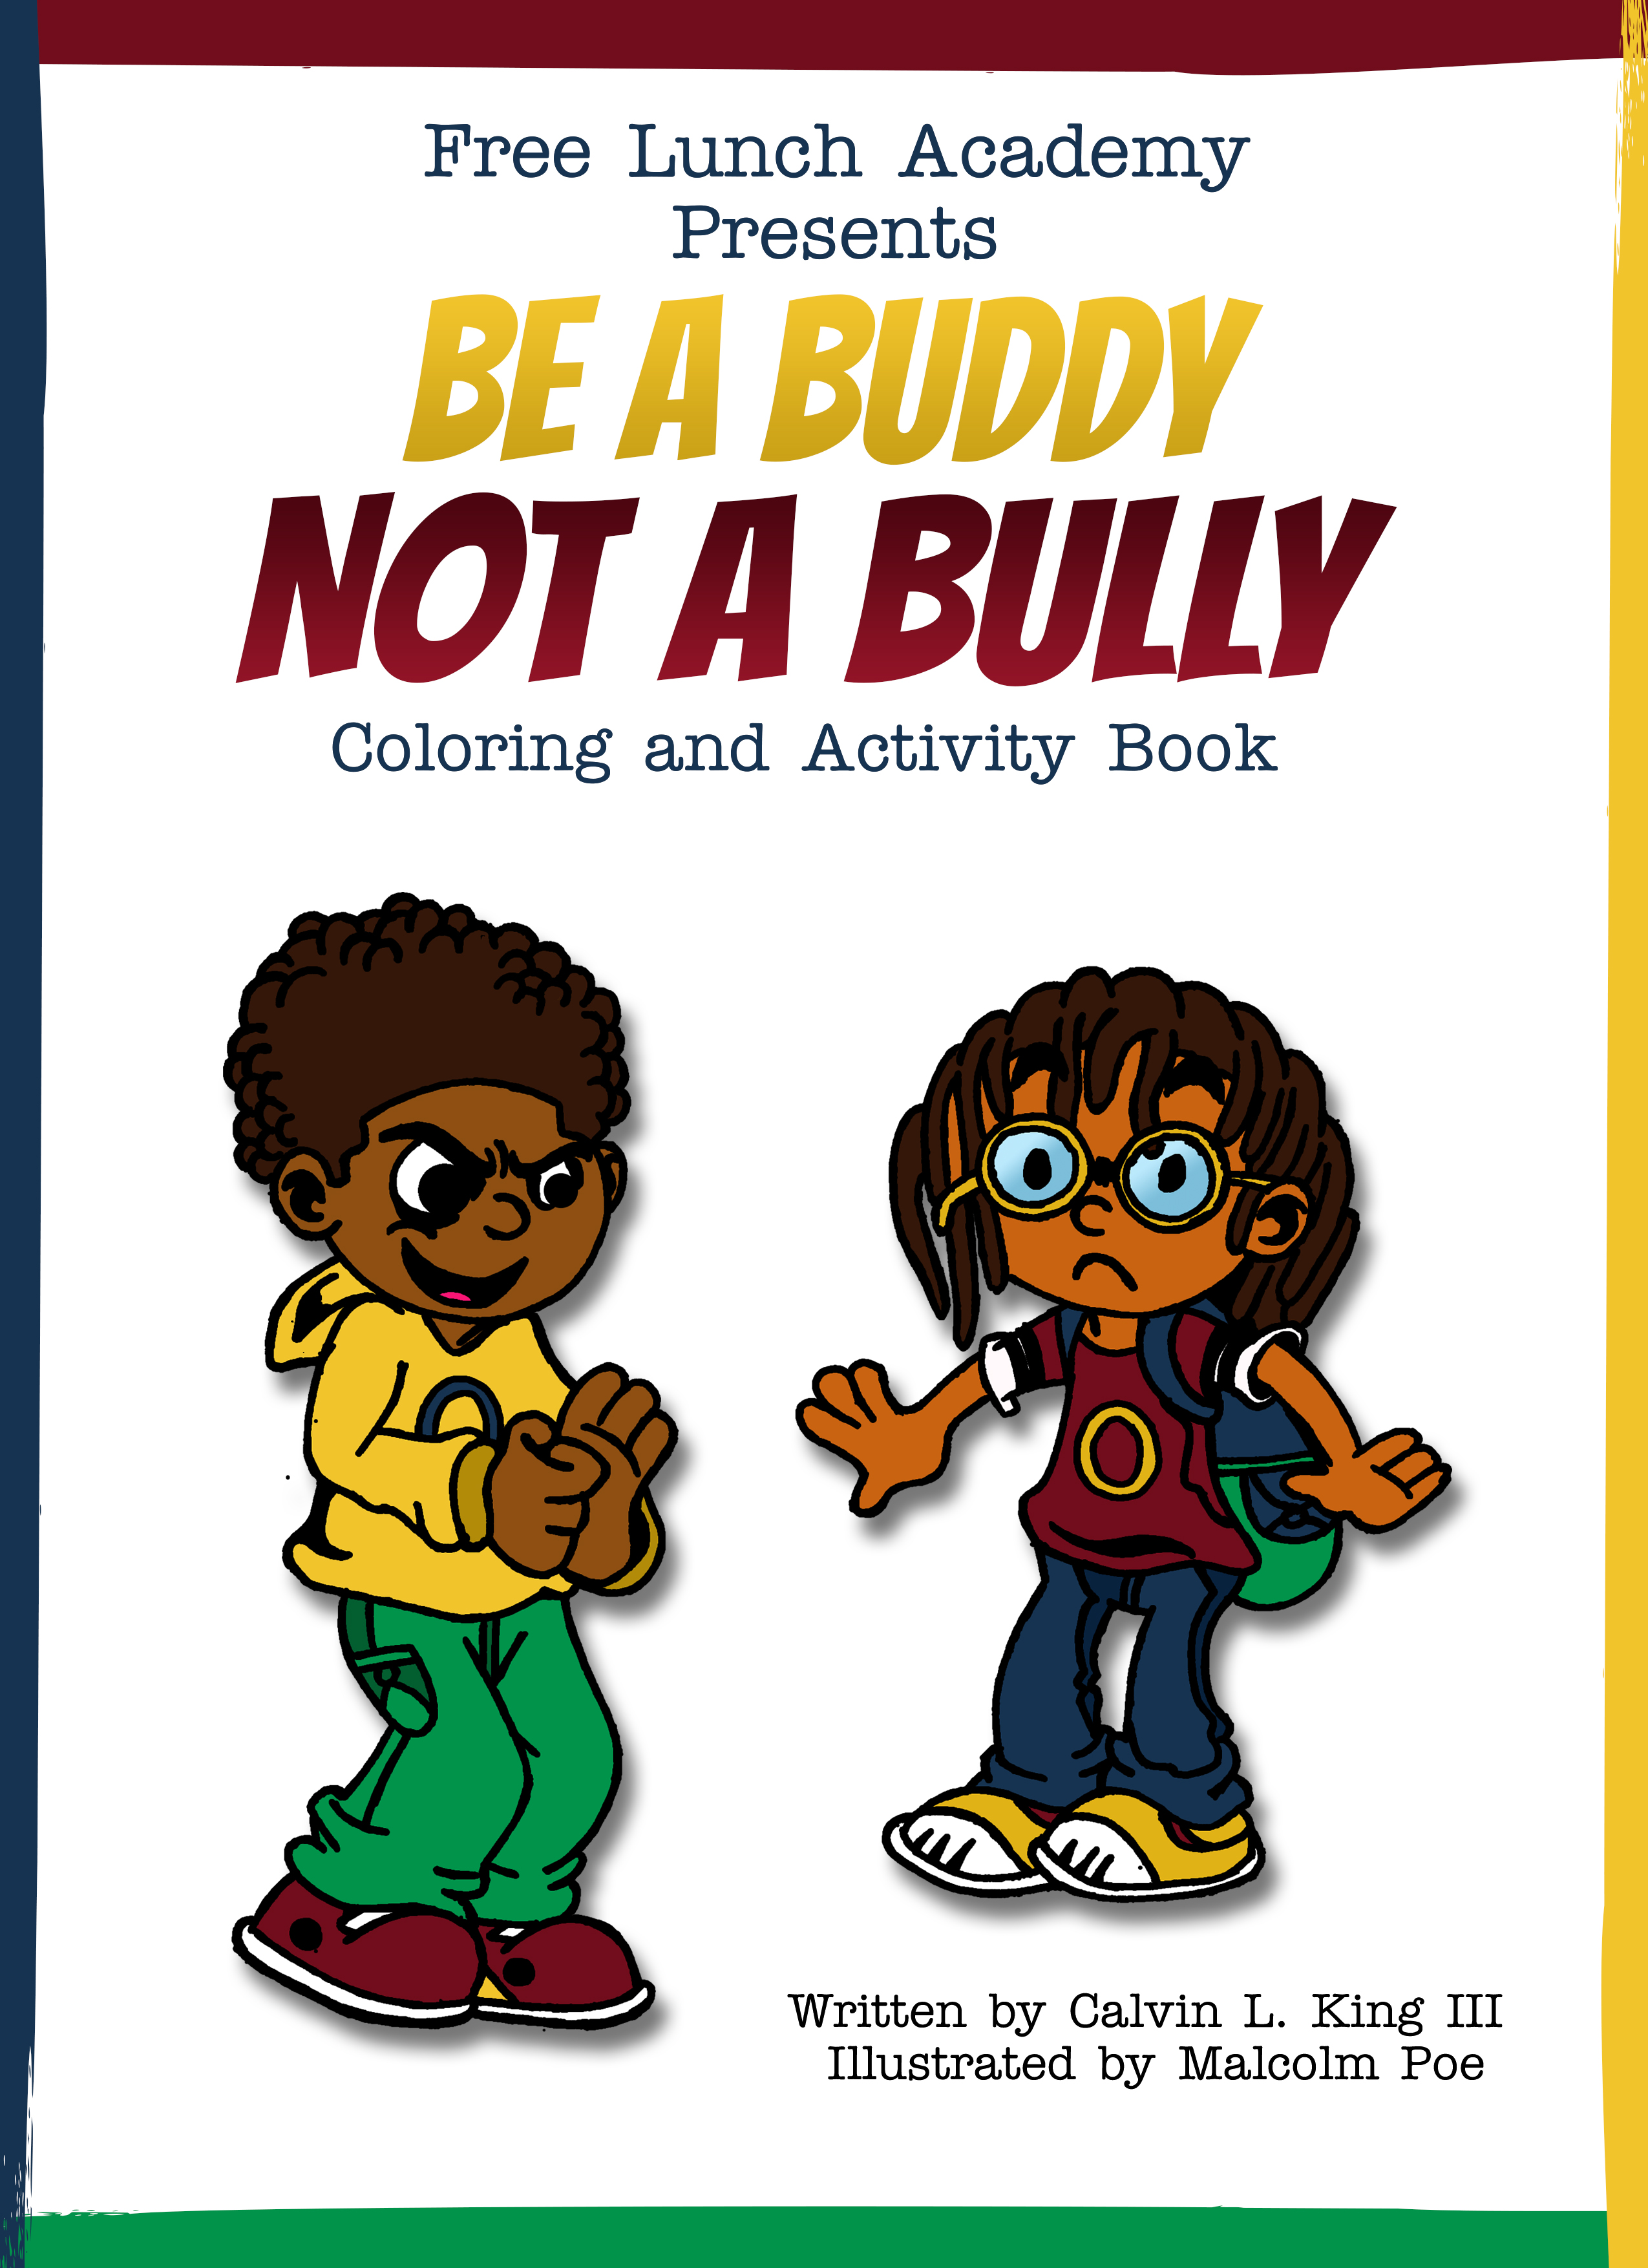 Be A Buddy Not A Bully (Coloring & Activity Book)